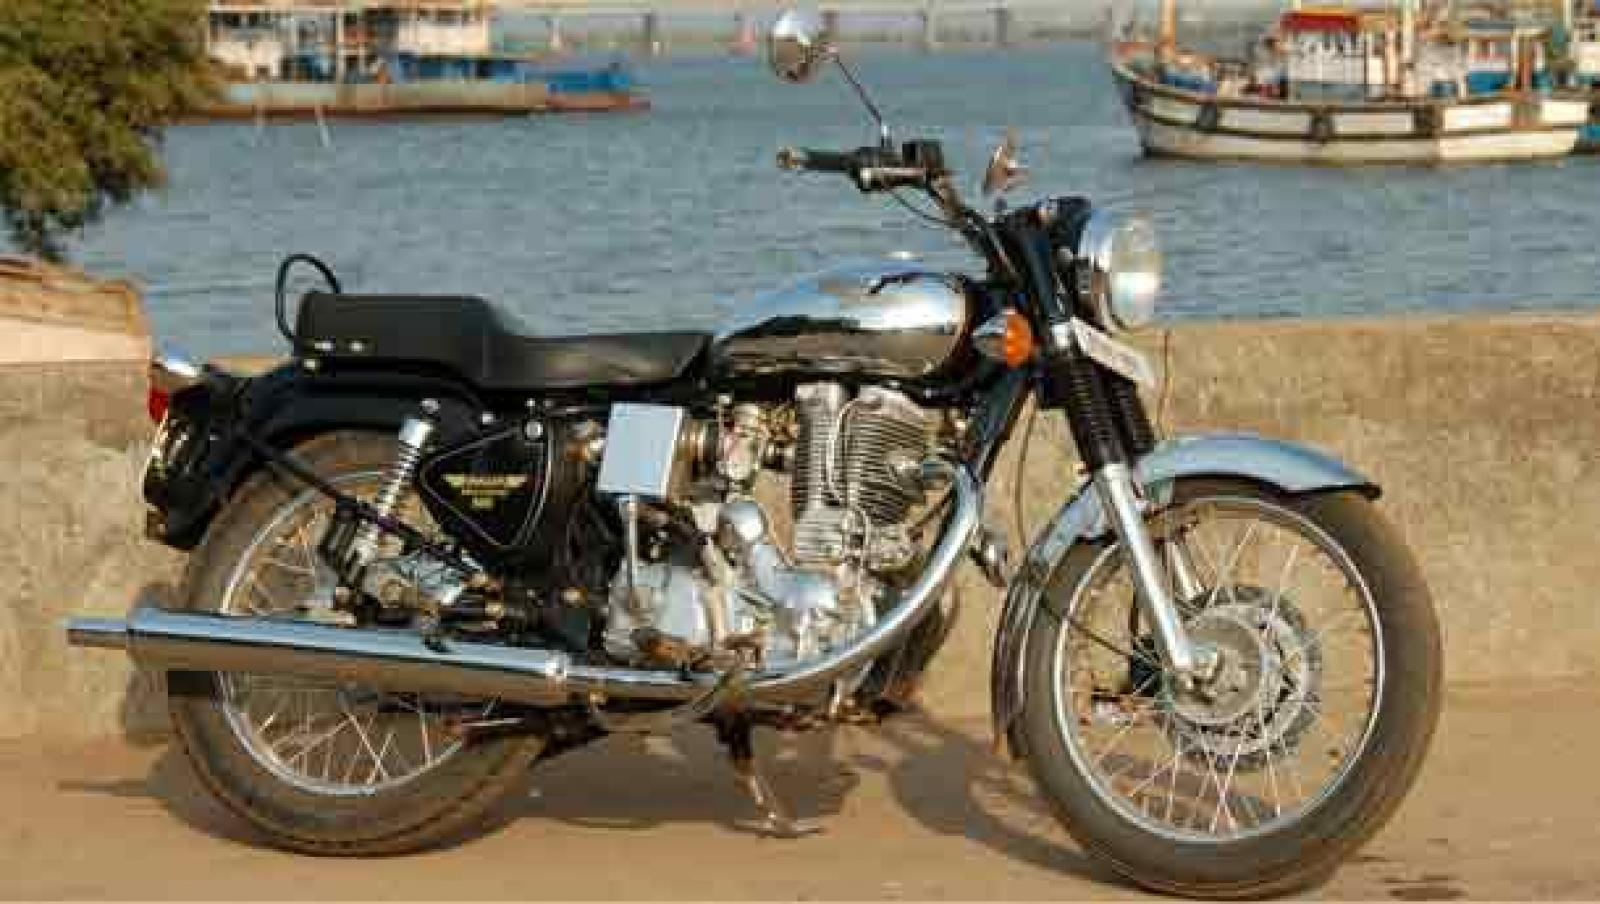 2009 Enfield Bullet Machismo #8